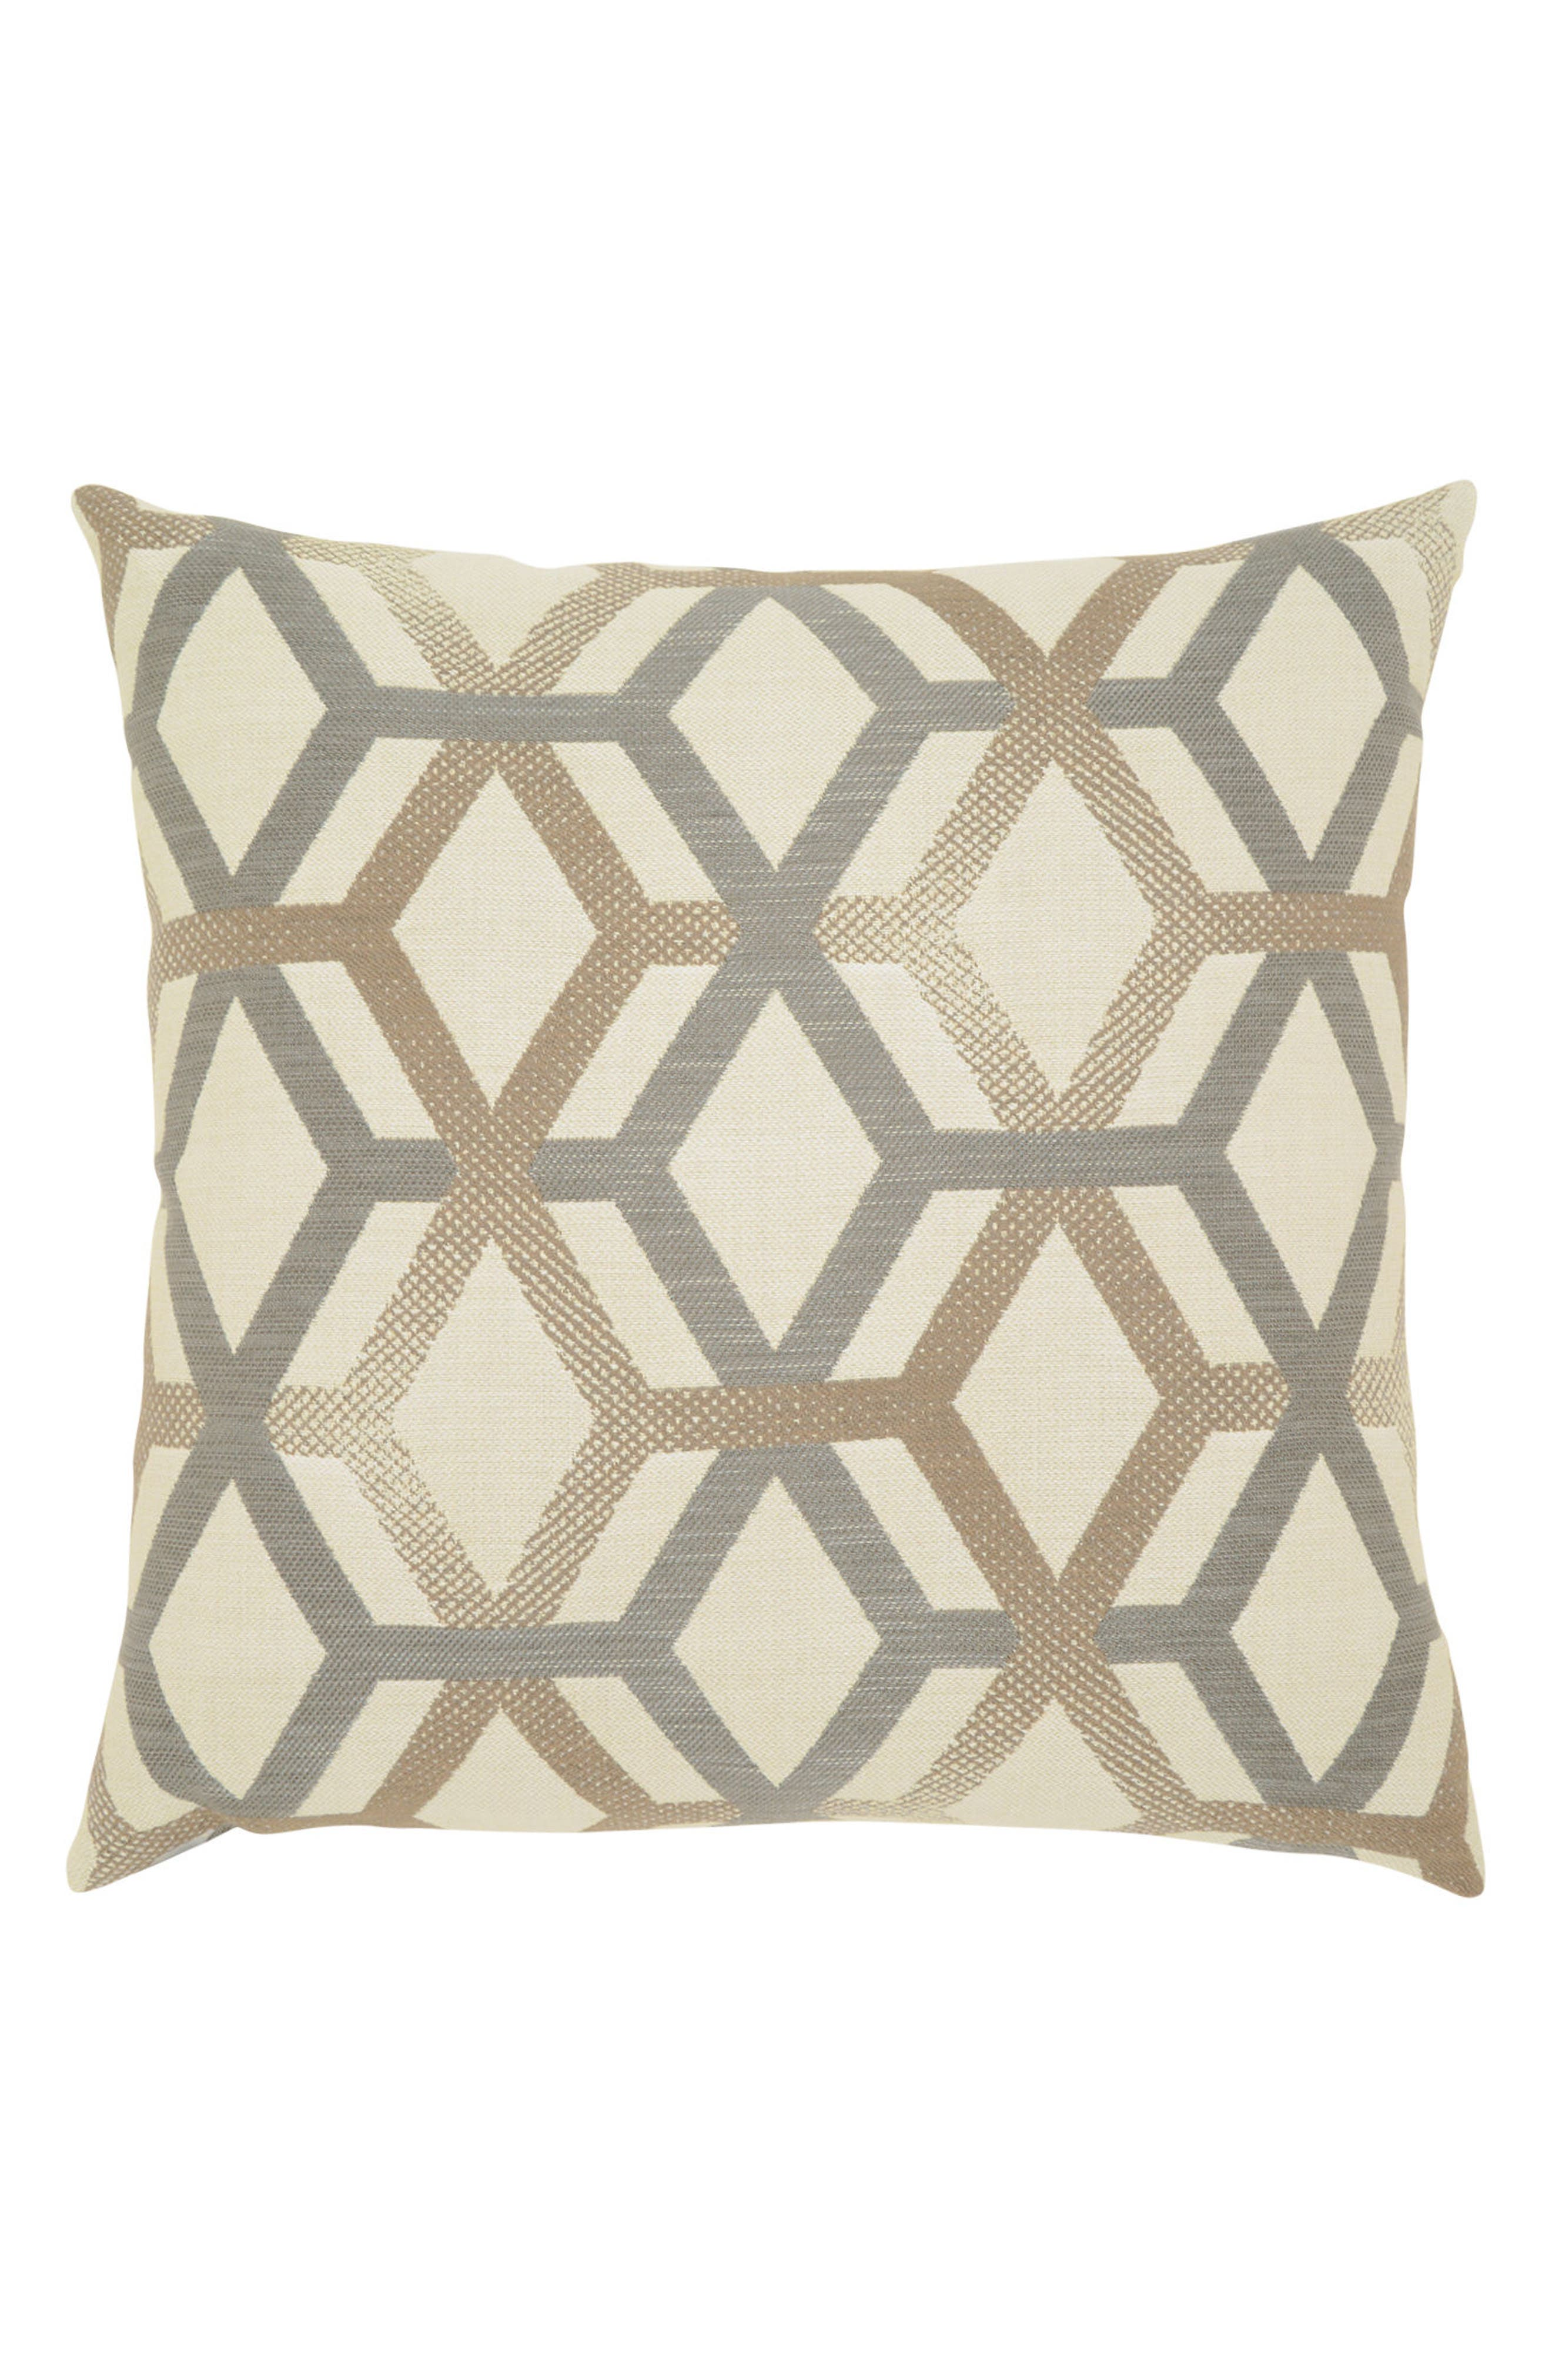 Lustrous Lines Indoor/Outdoor Accent Pillow,                             Main thumbnail 1, color,                             IVORY/ GREY